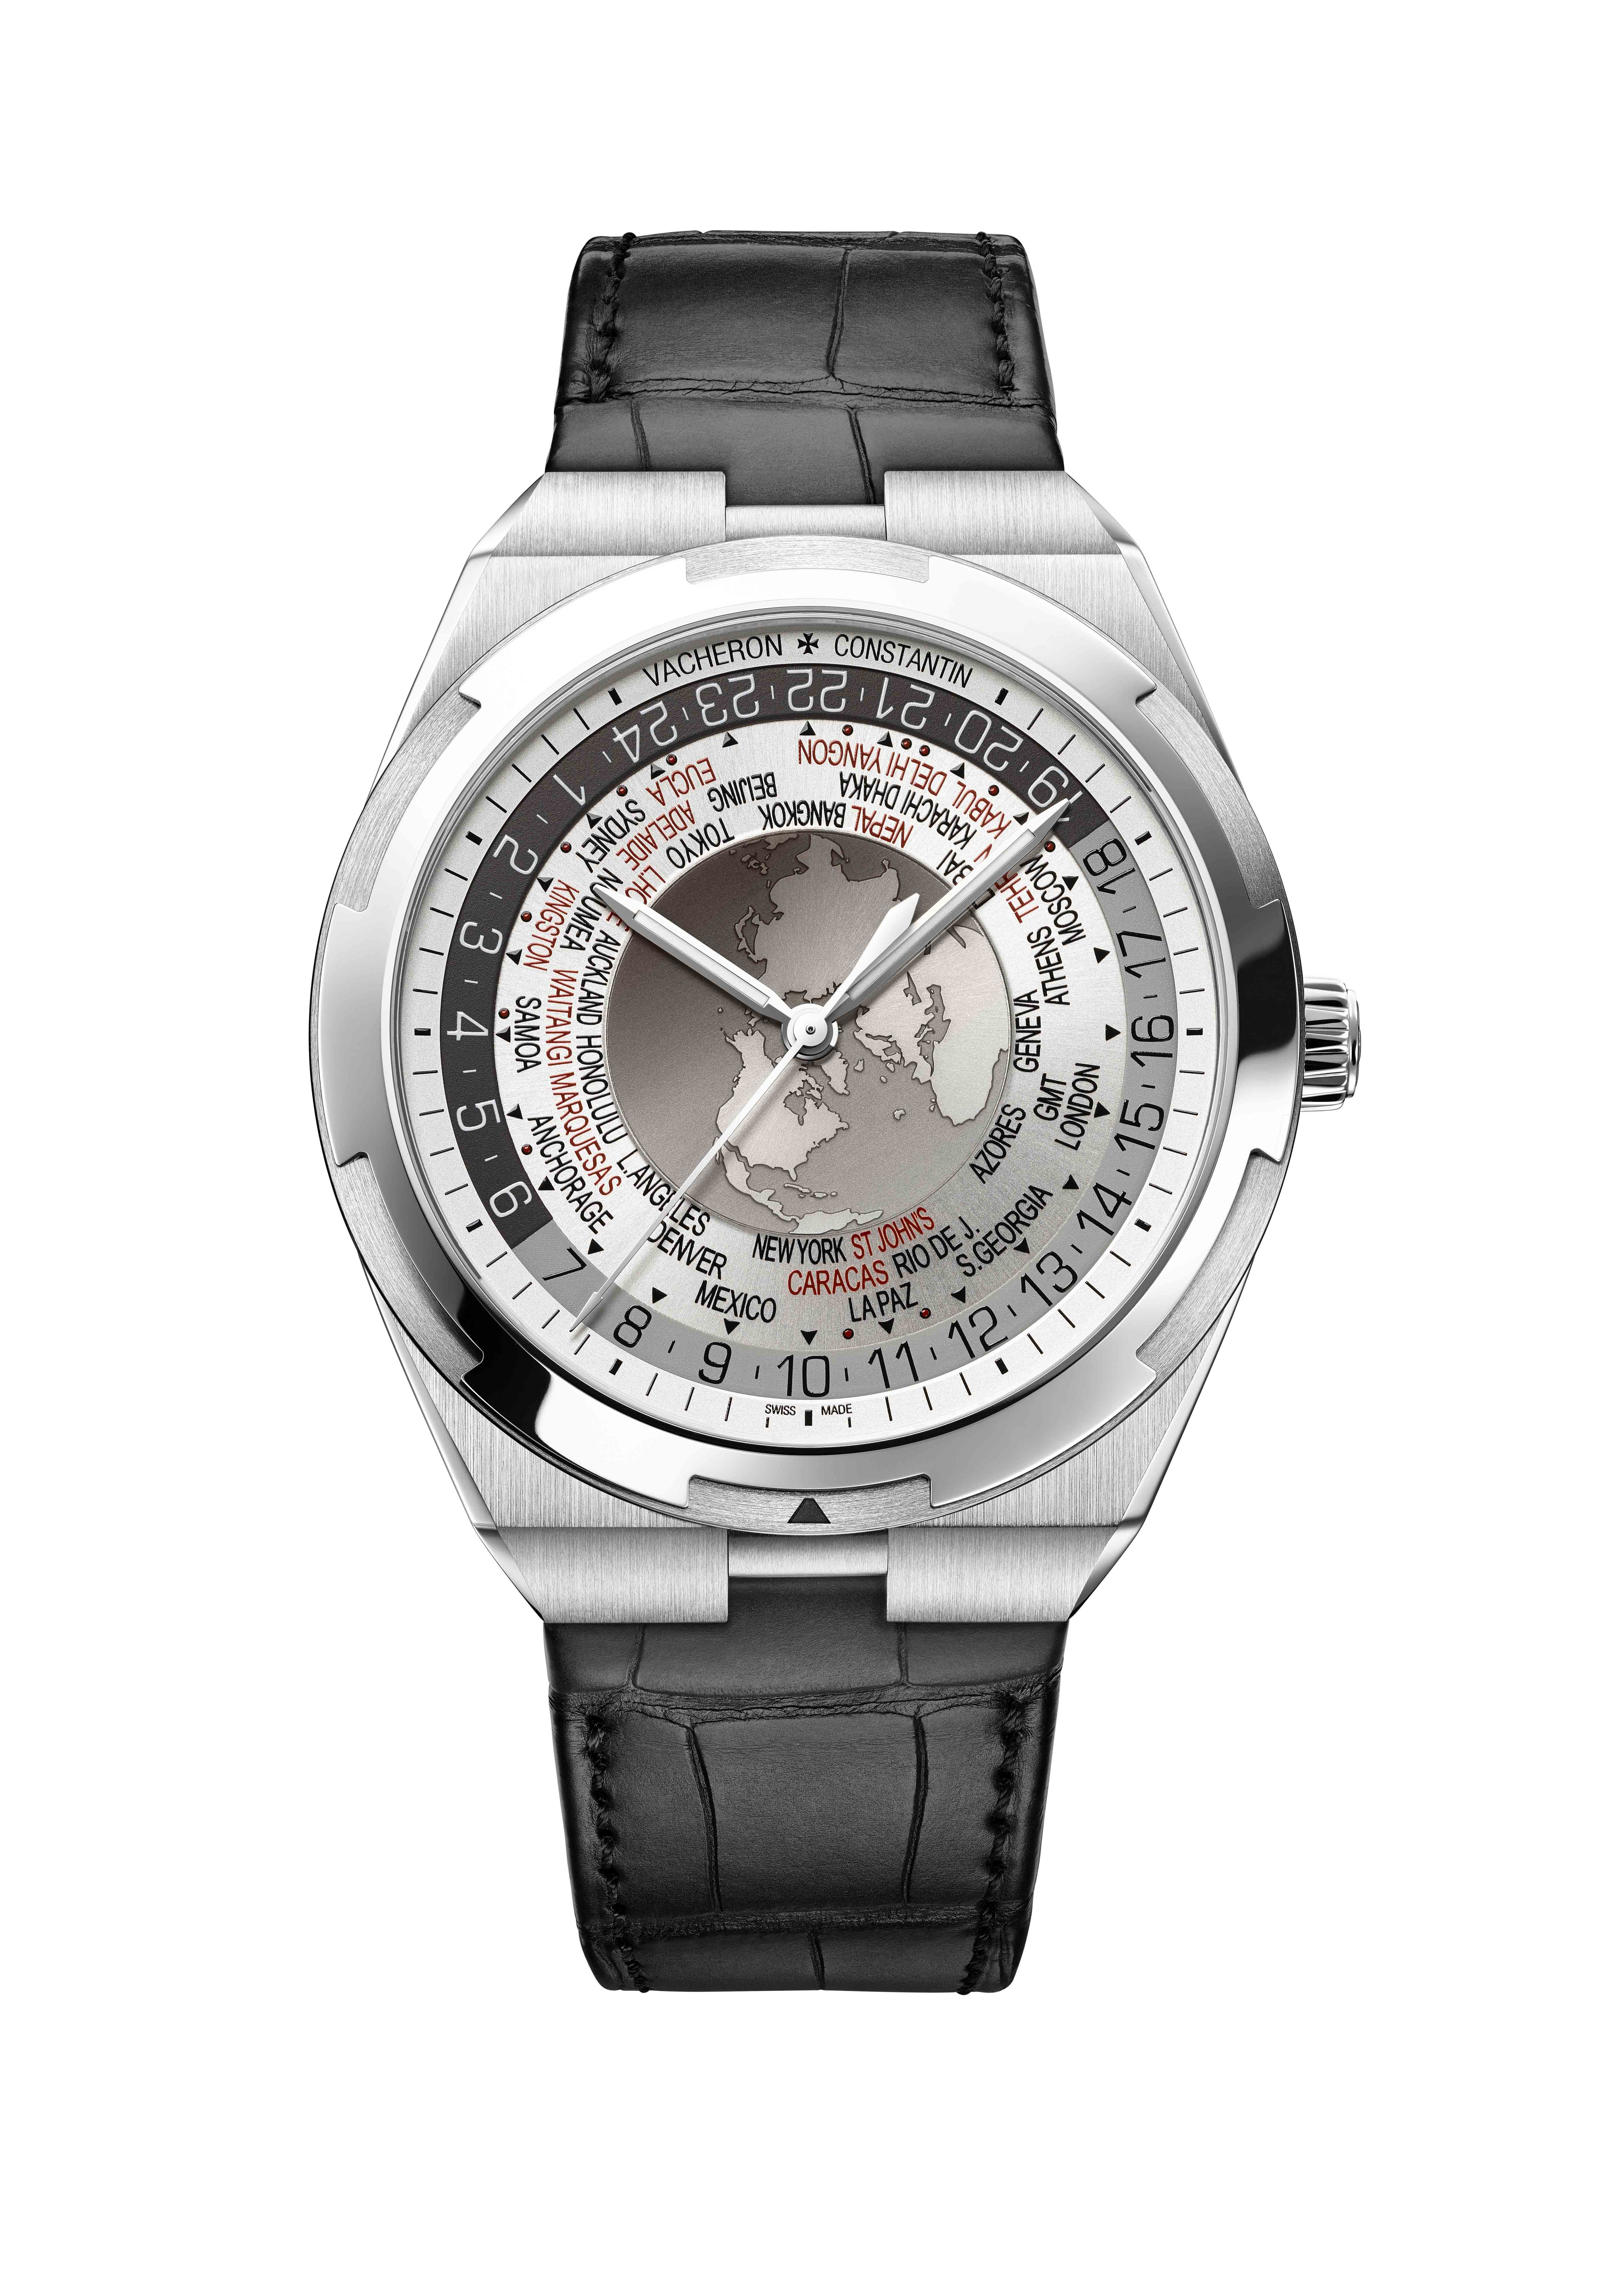 World-timer watches allow eight ways to see the globe   South China